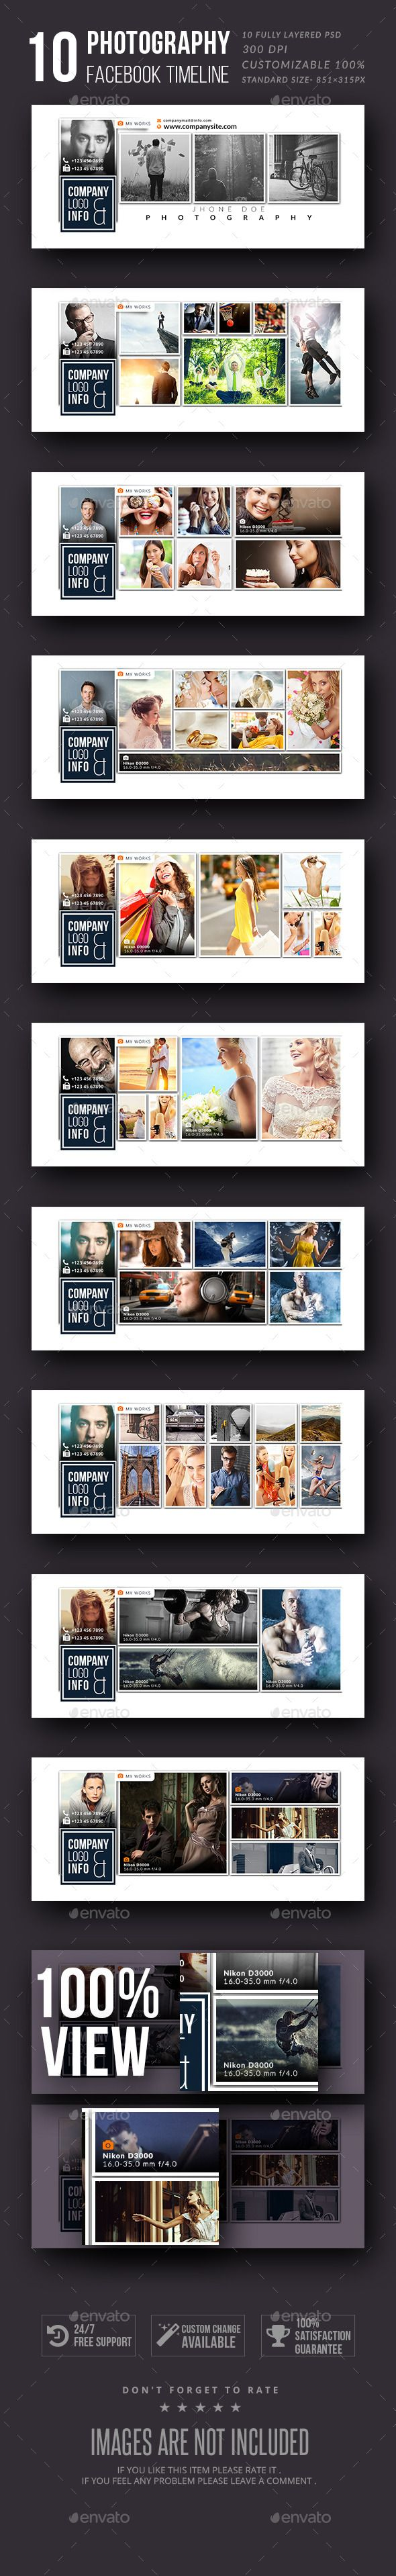 Photography Facebook Timeline Cover Template PSD #design Download: http://graphicriver.net/item/photography-facebook-timeline-cover/11350587?ref=ksioks